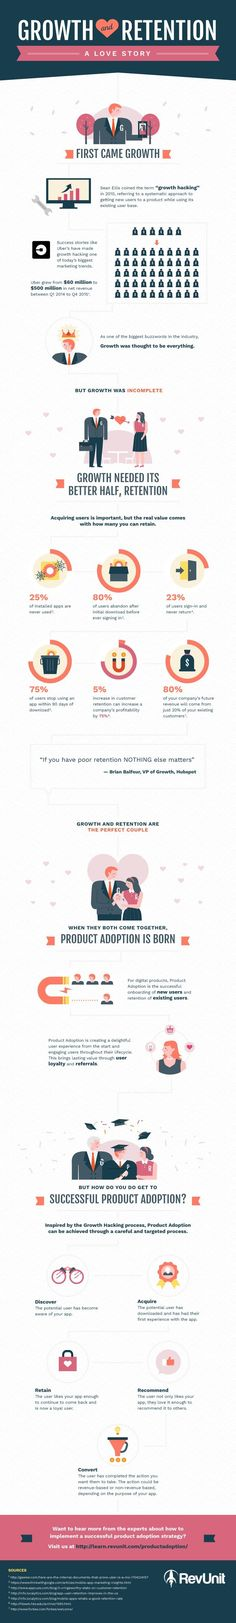 Infographic creator that turn your data into cool infographics design: infographic poster, timeline infographic, interactive infographic Marketing Tools, Business Marketing, Digital Marketing, Business Infographics, Infographic Creator, Timeline Infographic, Business Articles, Business Tips, Start Ups